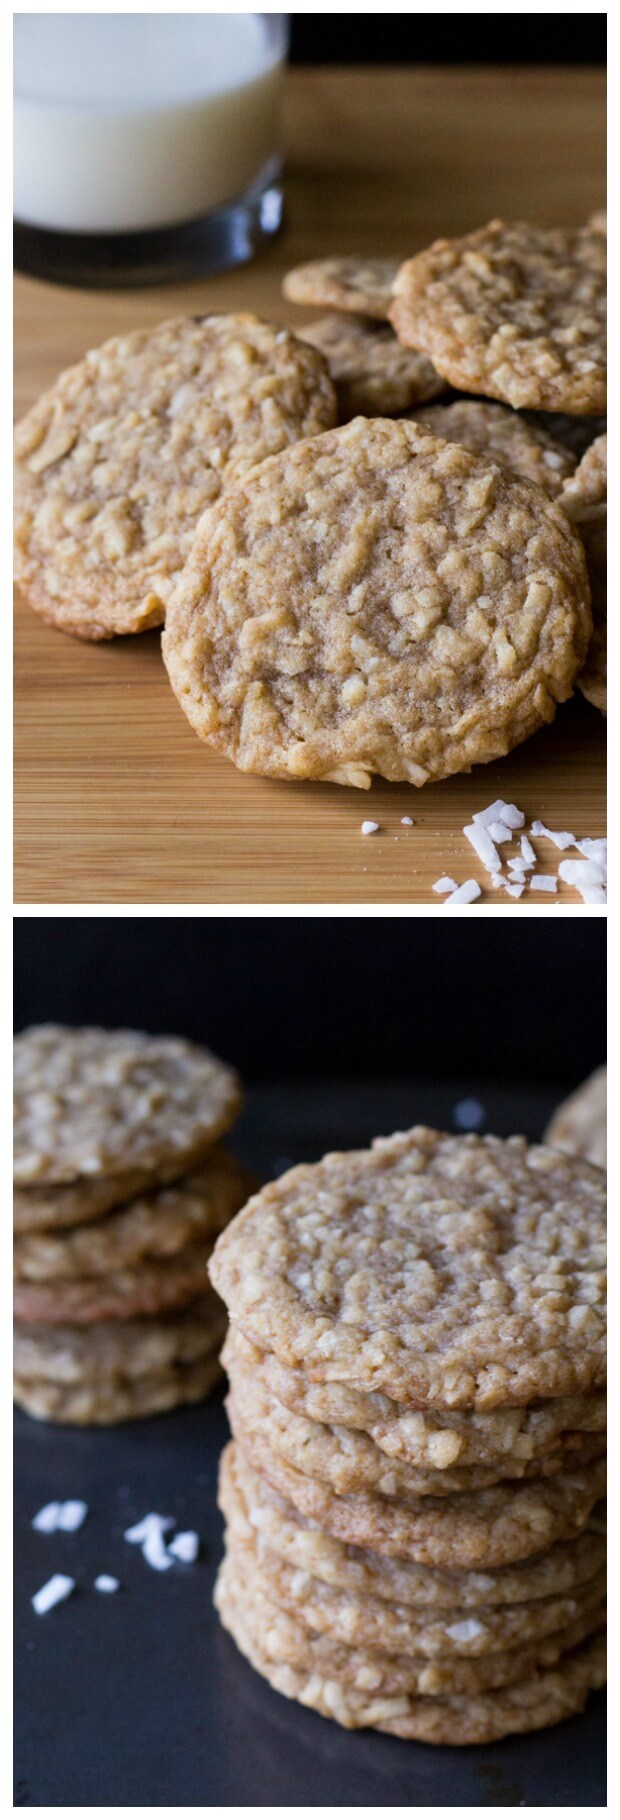 Super soft & chewy coconut cookies. With a slight hint of caramel - these delicate cookies are so simple and delicious.